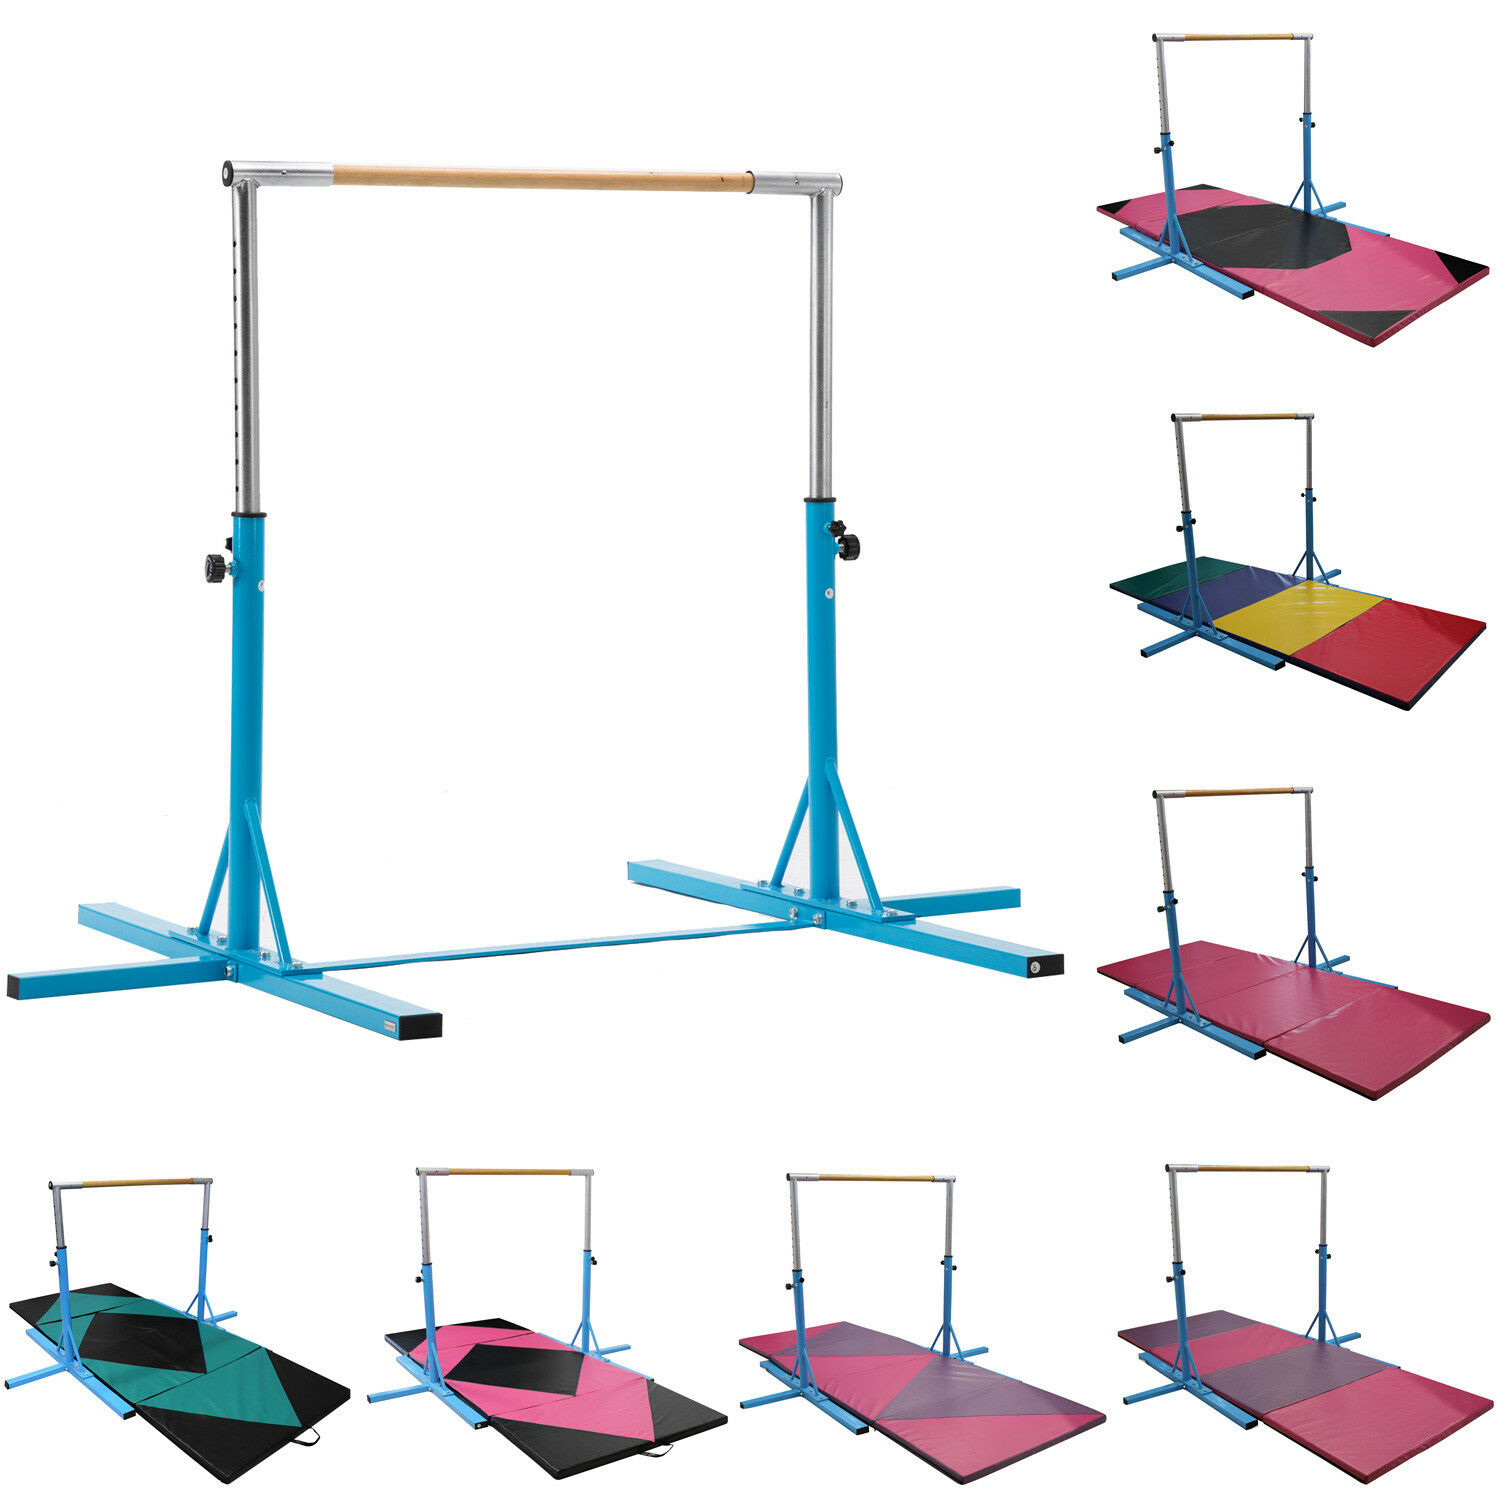 bluee Adjustable Gymnastics Training Horizontal Bar Sports Equipment with Gym Mat